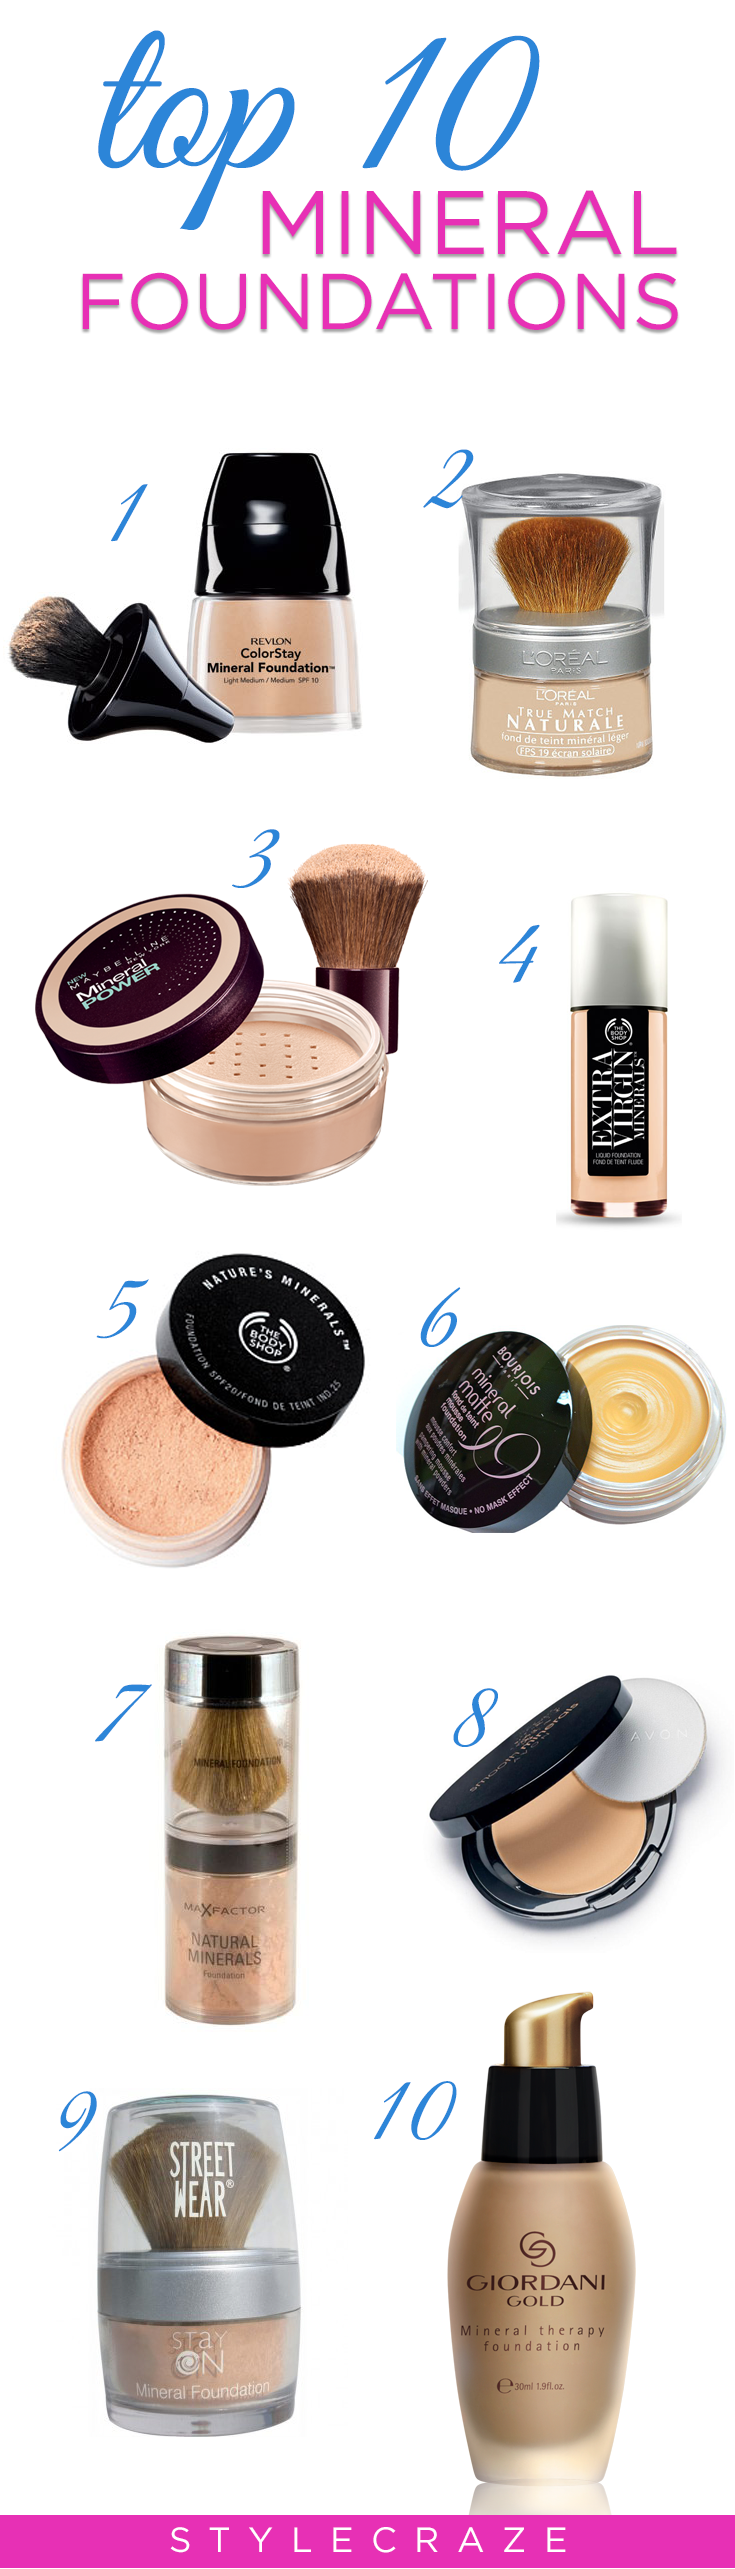 Best Mineral Foundations Our Top 10 Mineral makeup